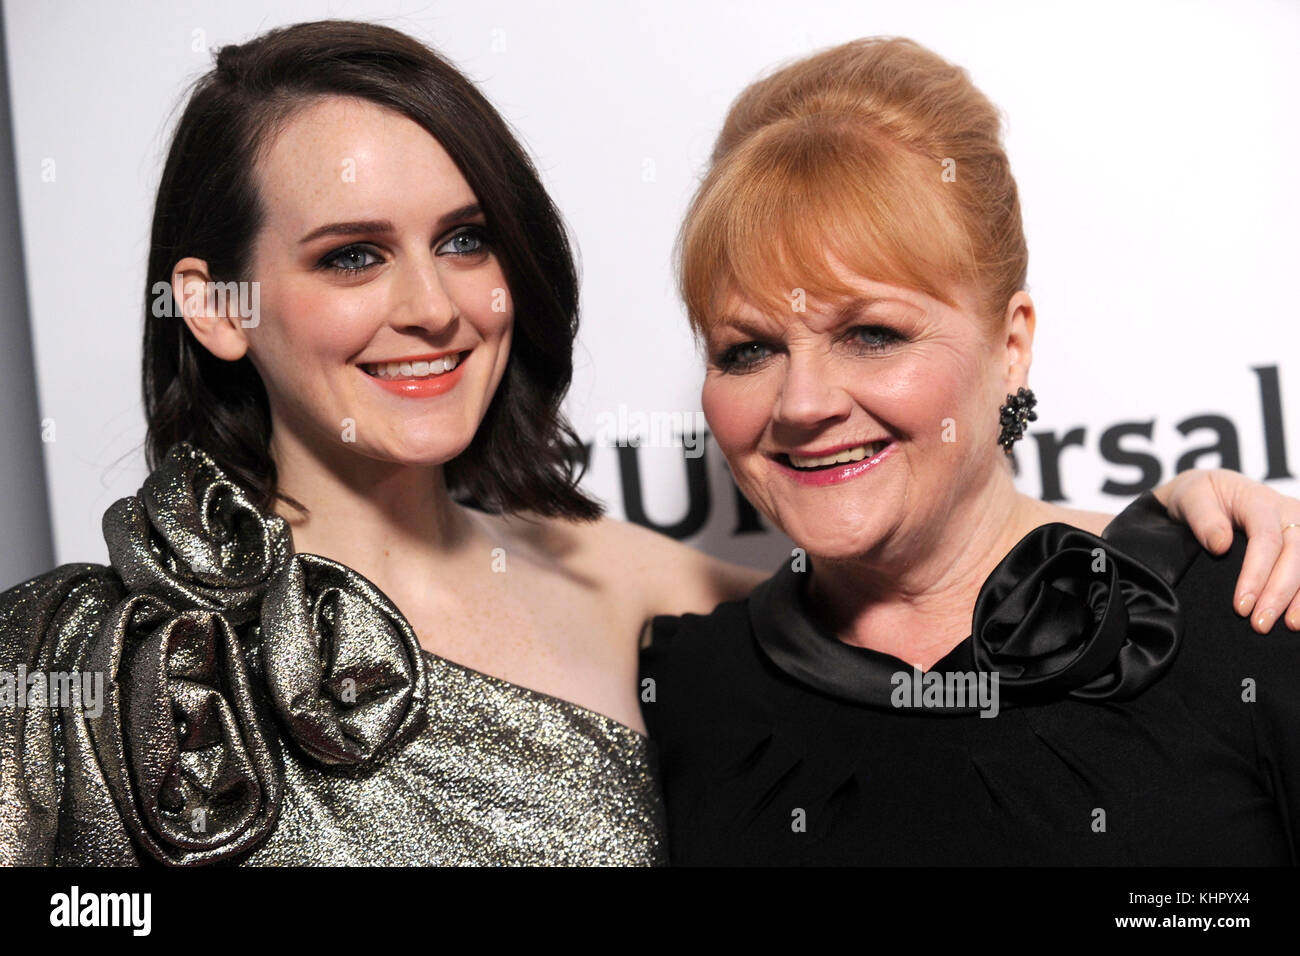 Sophie McShera and Lesley Nicol attend the 'Donwton Abbey: The Exhibition' opening at 218 West 57th Street - Stock Image